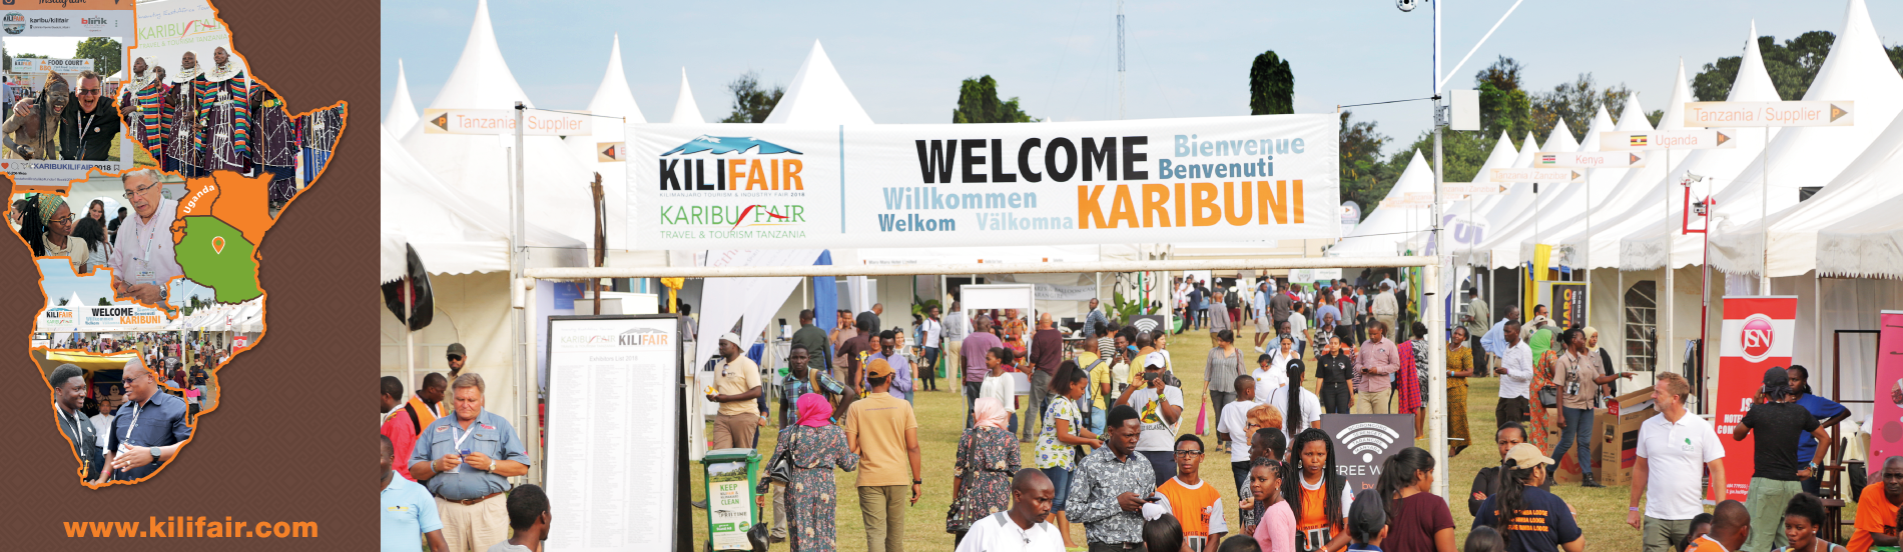 KARIBU – KILIFAIR 2019 – 7th – 9th June 2019 – Travel Guide